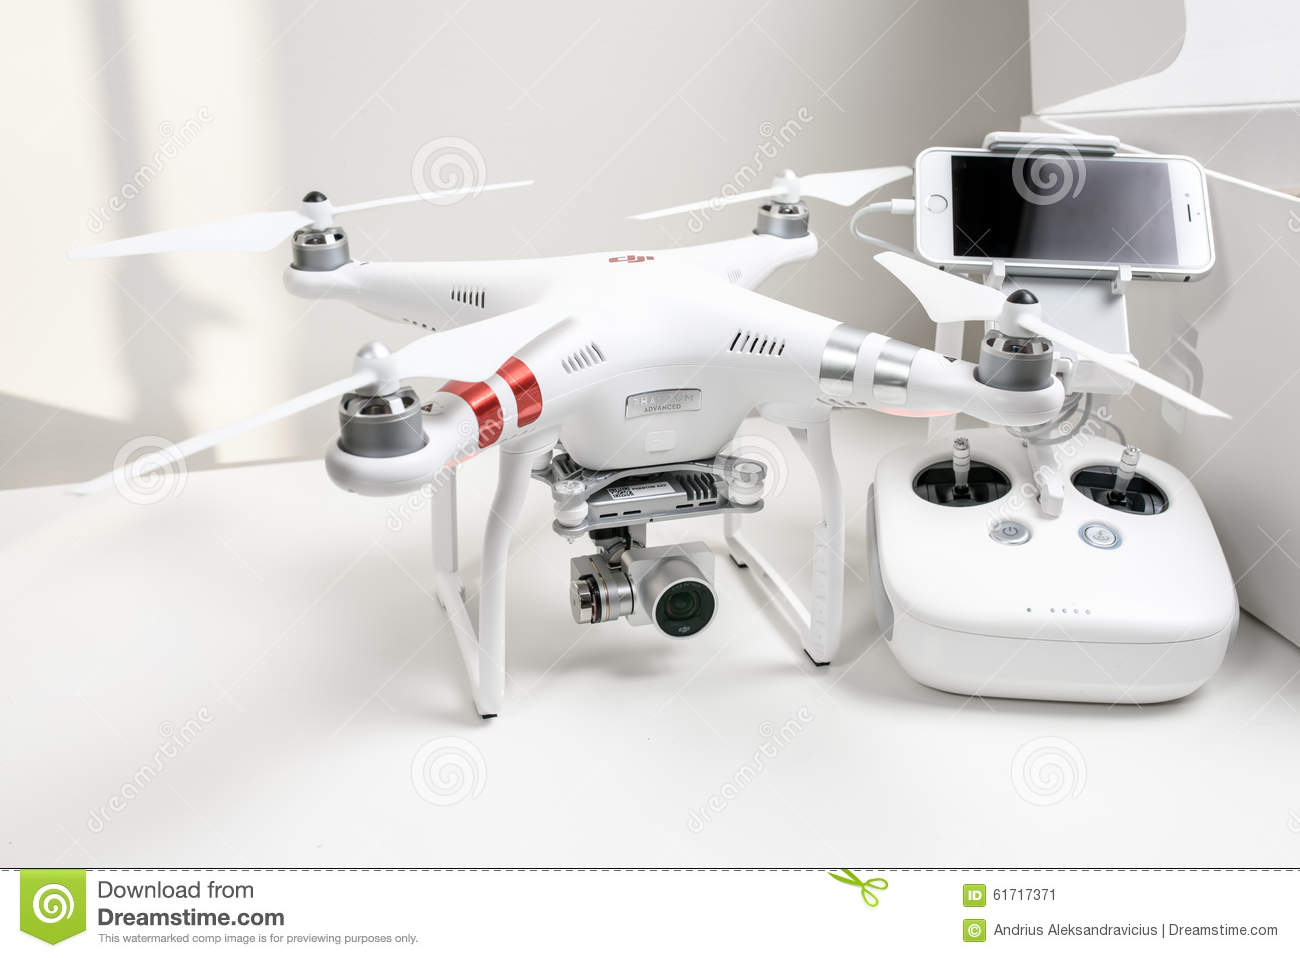 achat drone occasion